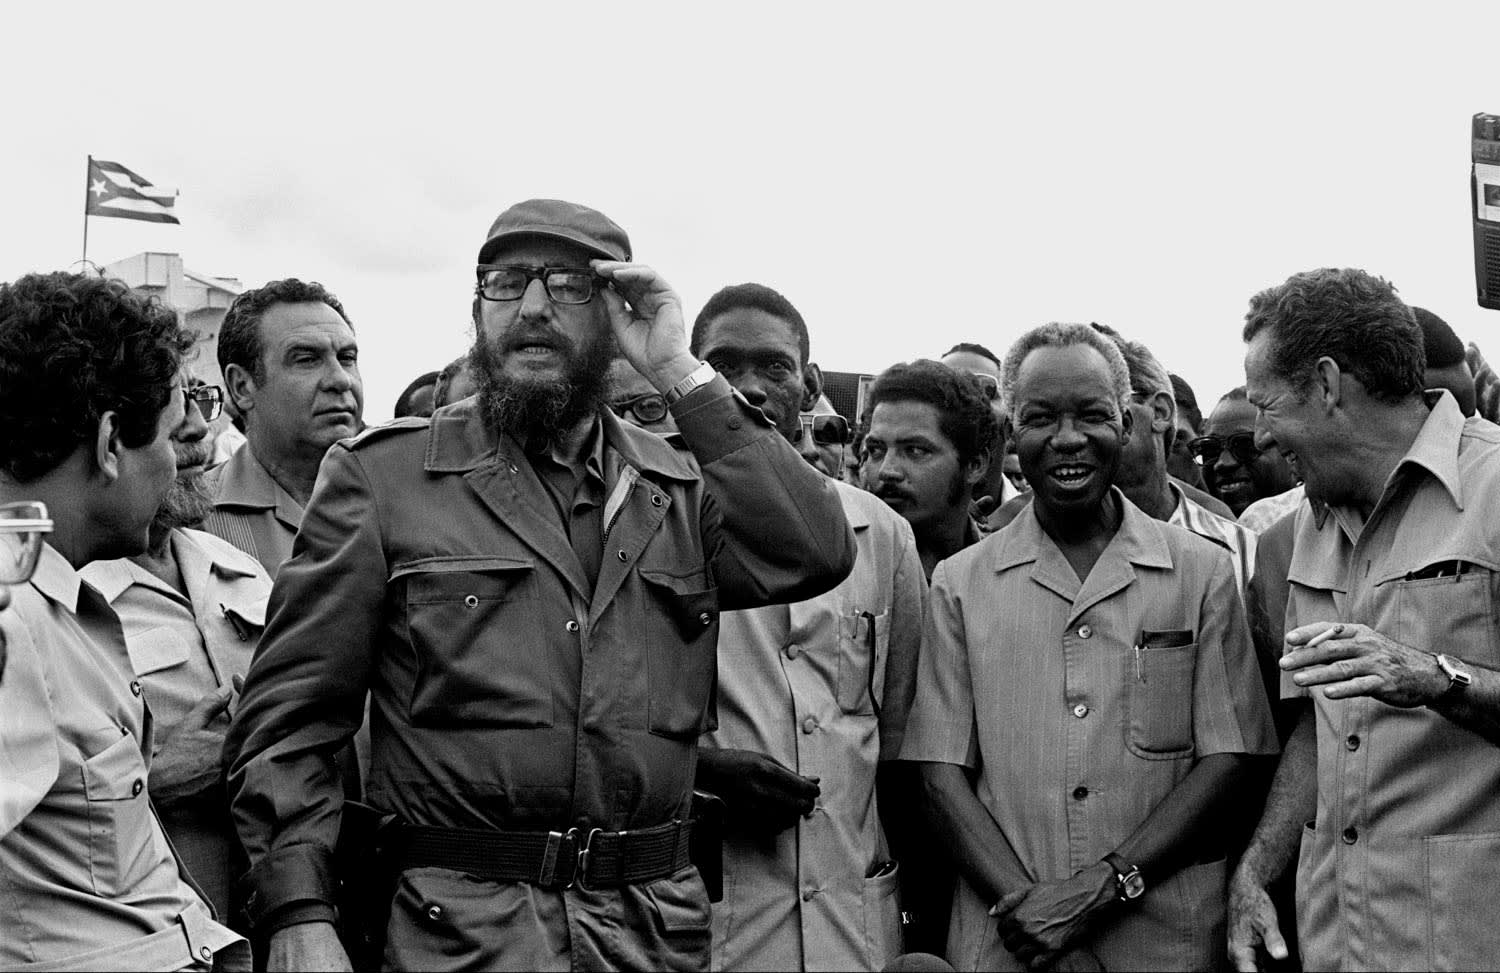 Cuban President Fidel Castro (left) with his younger brother Raul Castro (right), accompanied by President Julius Nyerere of Tanzania (centre) during a visit to a Cuban-funded agriculture school in Tanzania, 1977. Courtesy Mohamed Amin Foundation/AKKA Project